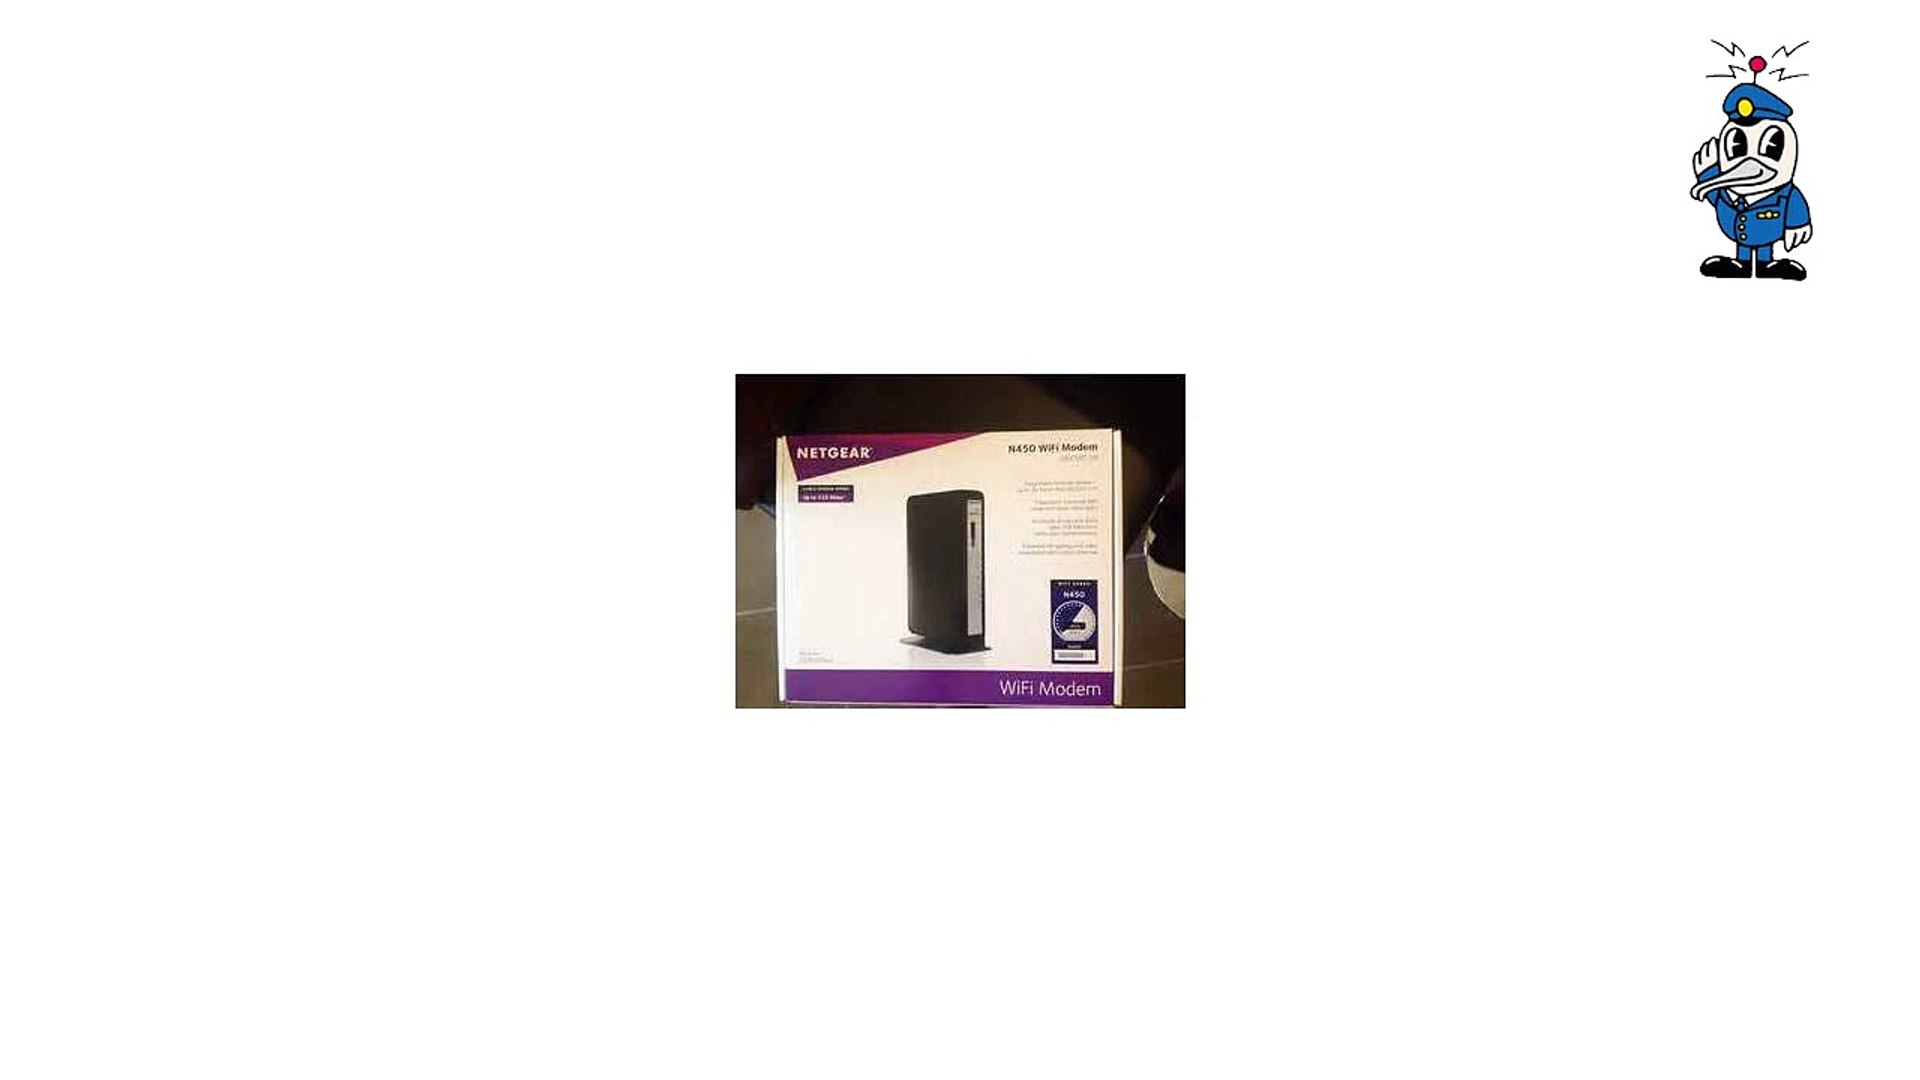 N450-100NAS Netgear N450 WiFi DOCSIS 3.0 Cable Modem Router